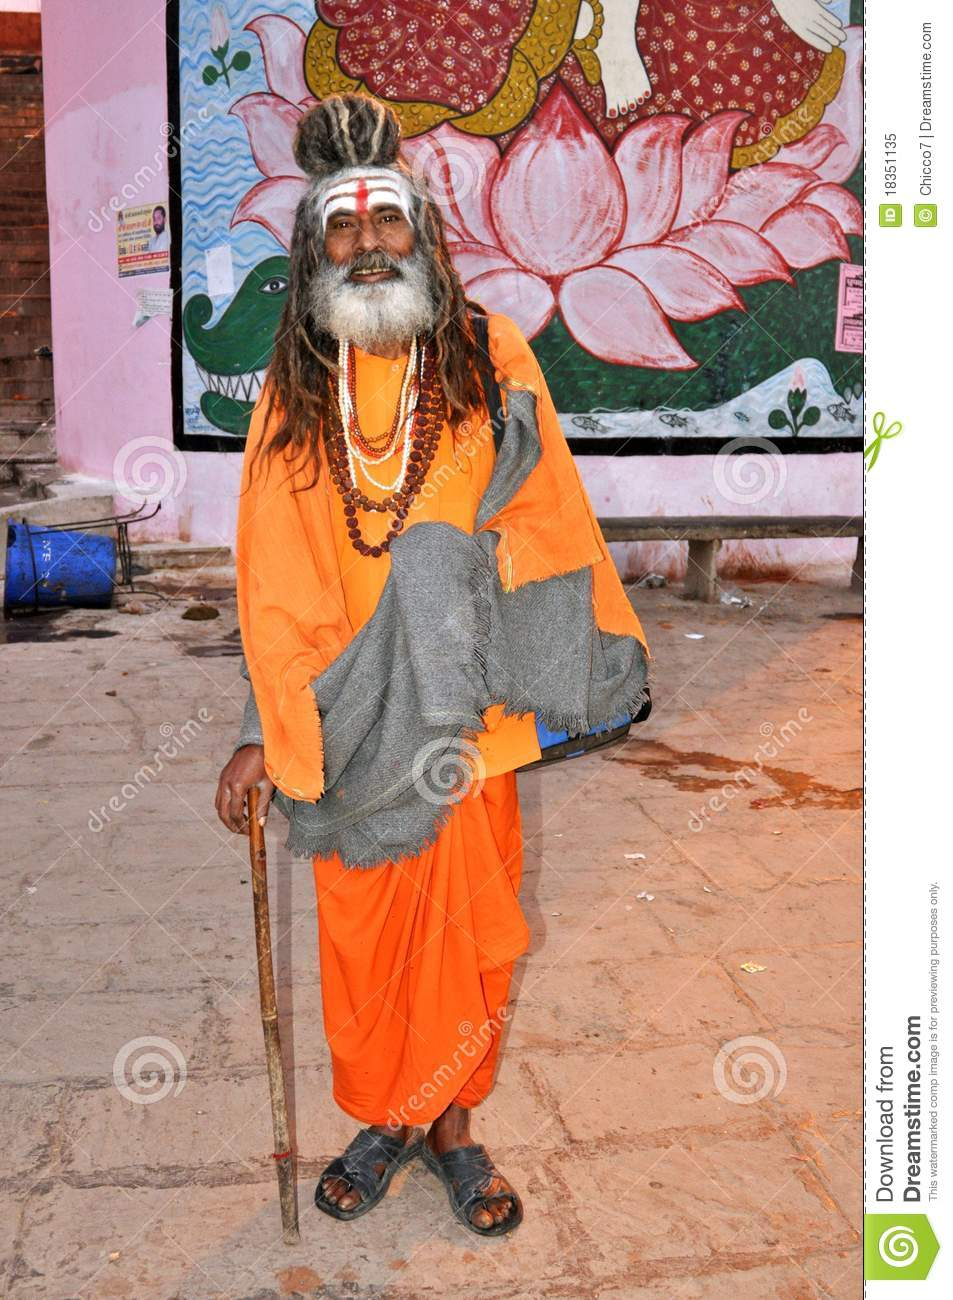 Sadhu (heilige mens) in Varanasi, India